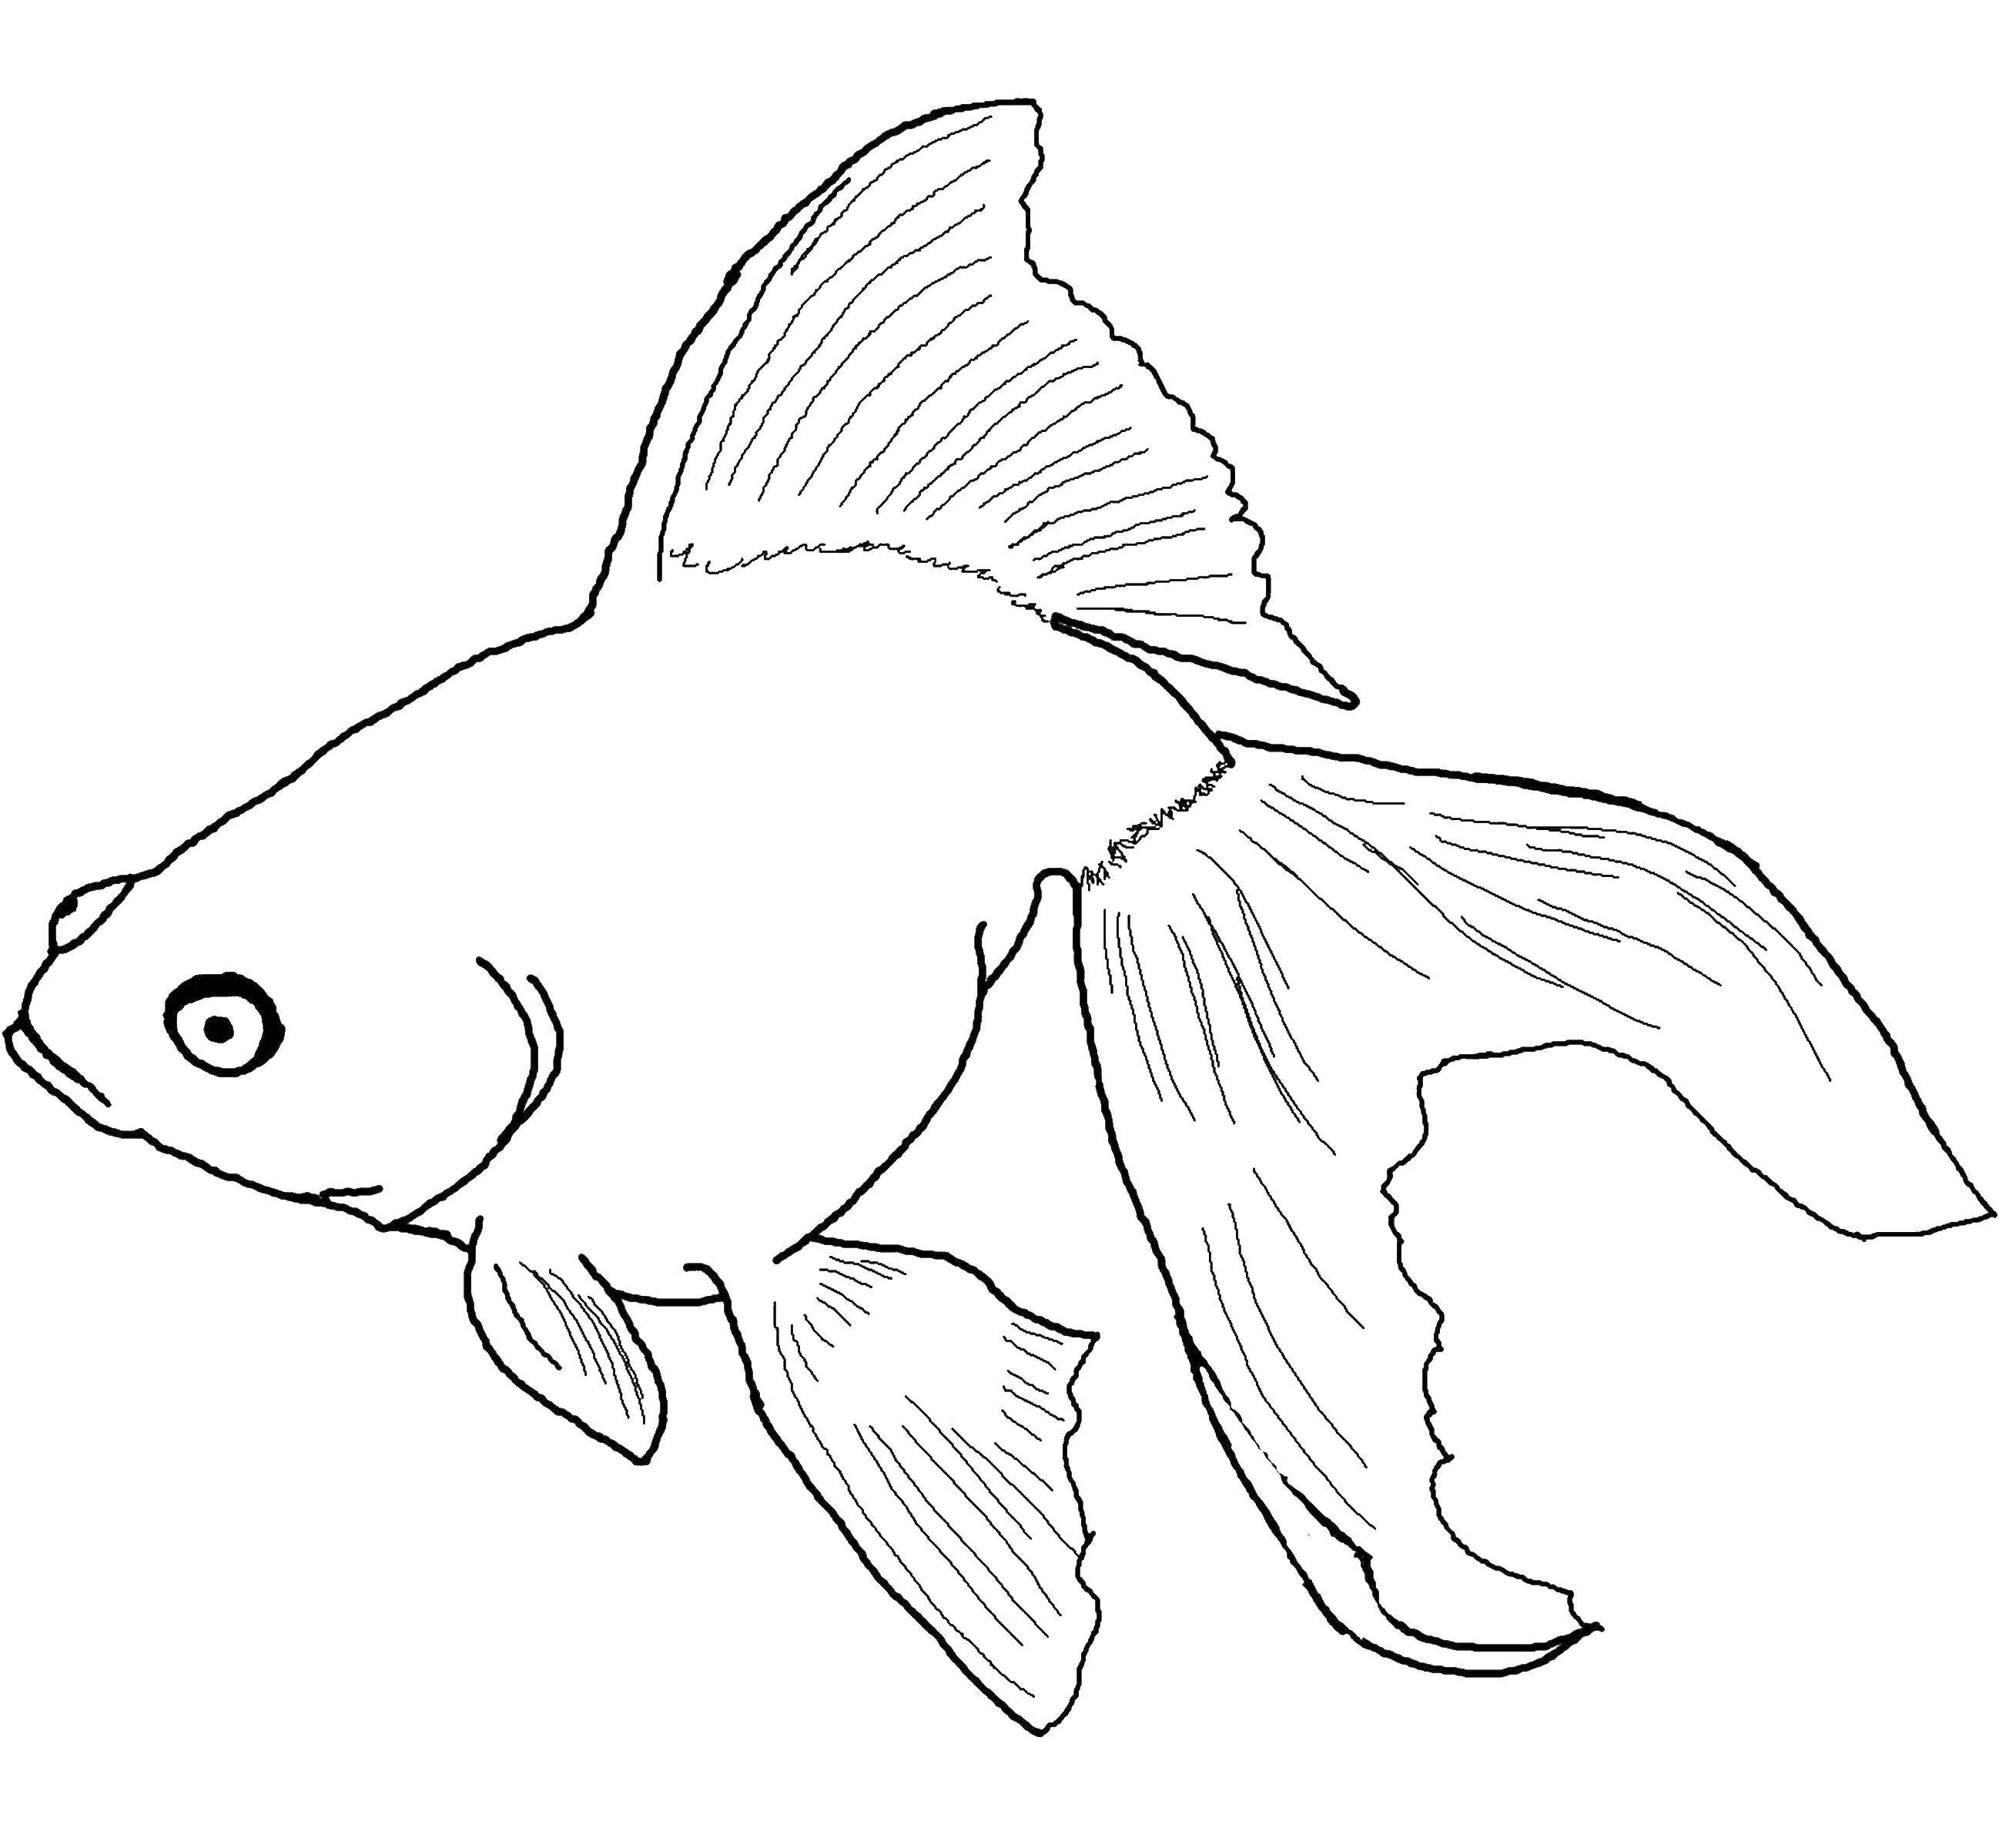 Coloring sheet fish Download leaves.  Print ,The contours of the leaves,